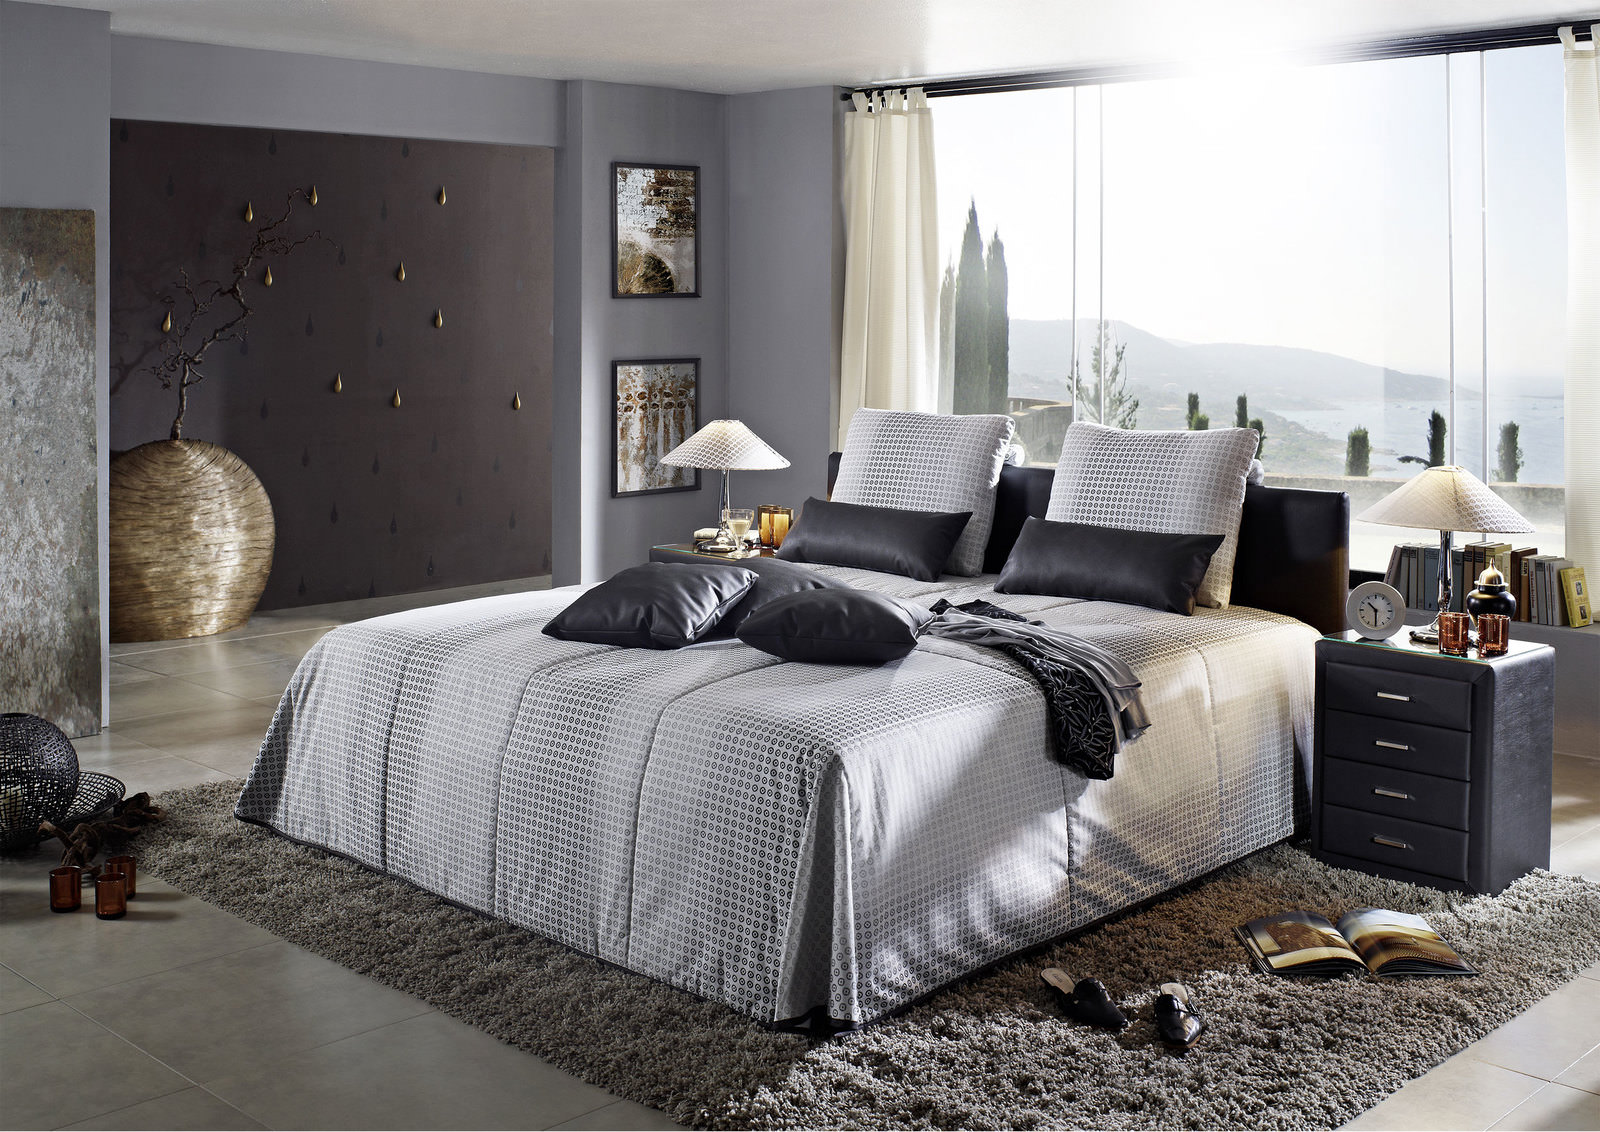 polsterbett online entdecken schaffrath ihr m belhaus. Black Bedroom Furniture Sets. Home Design Ideas